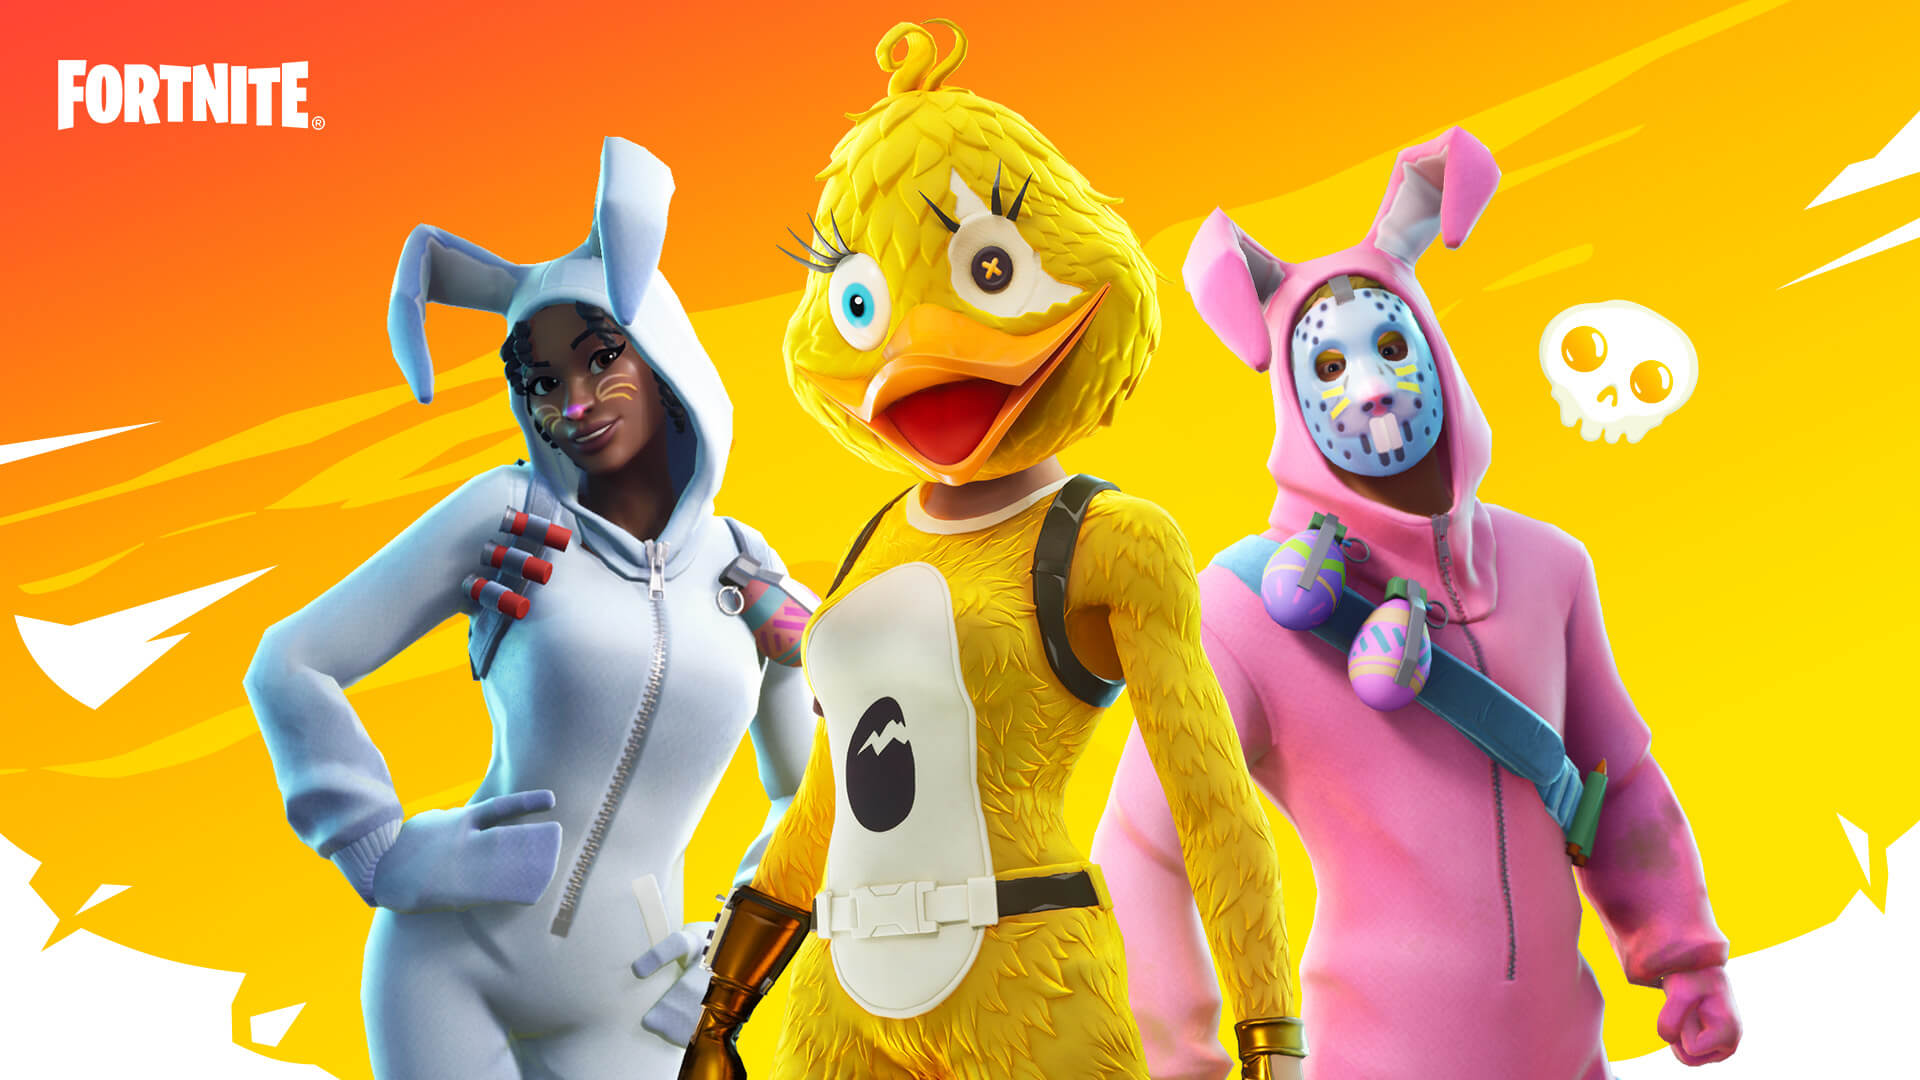 Fortnite: Start of Freaky Spring today for Update 16.10 - that's what you can expect